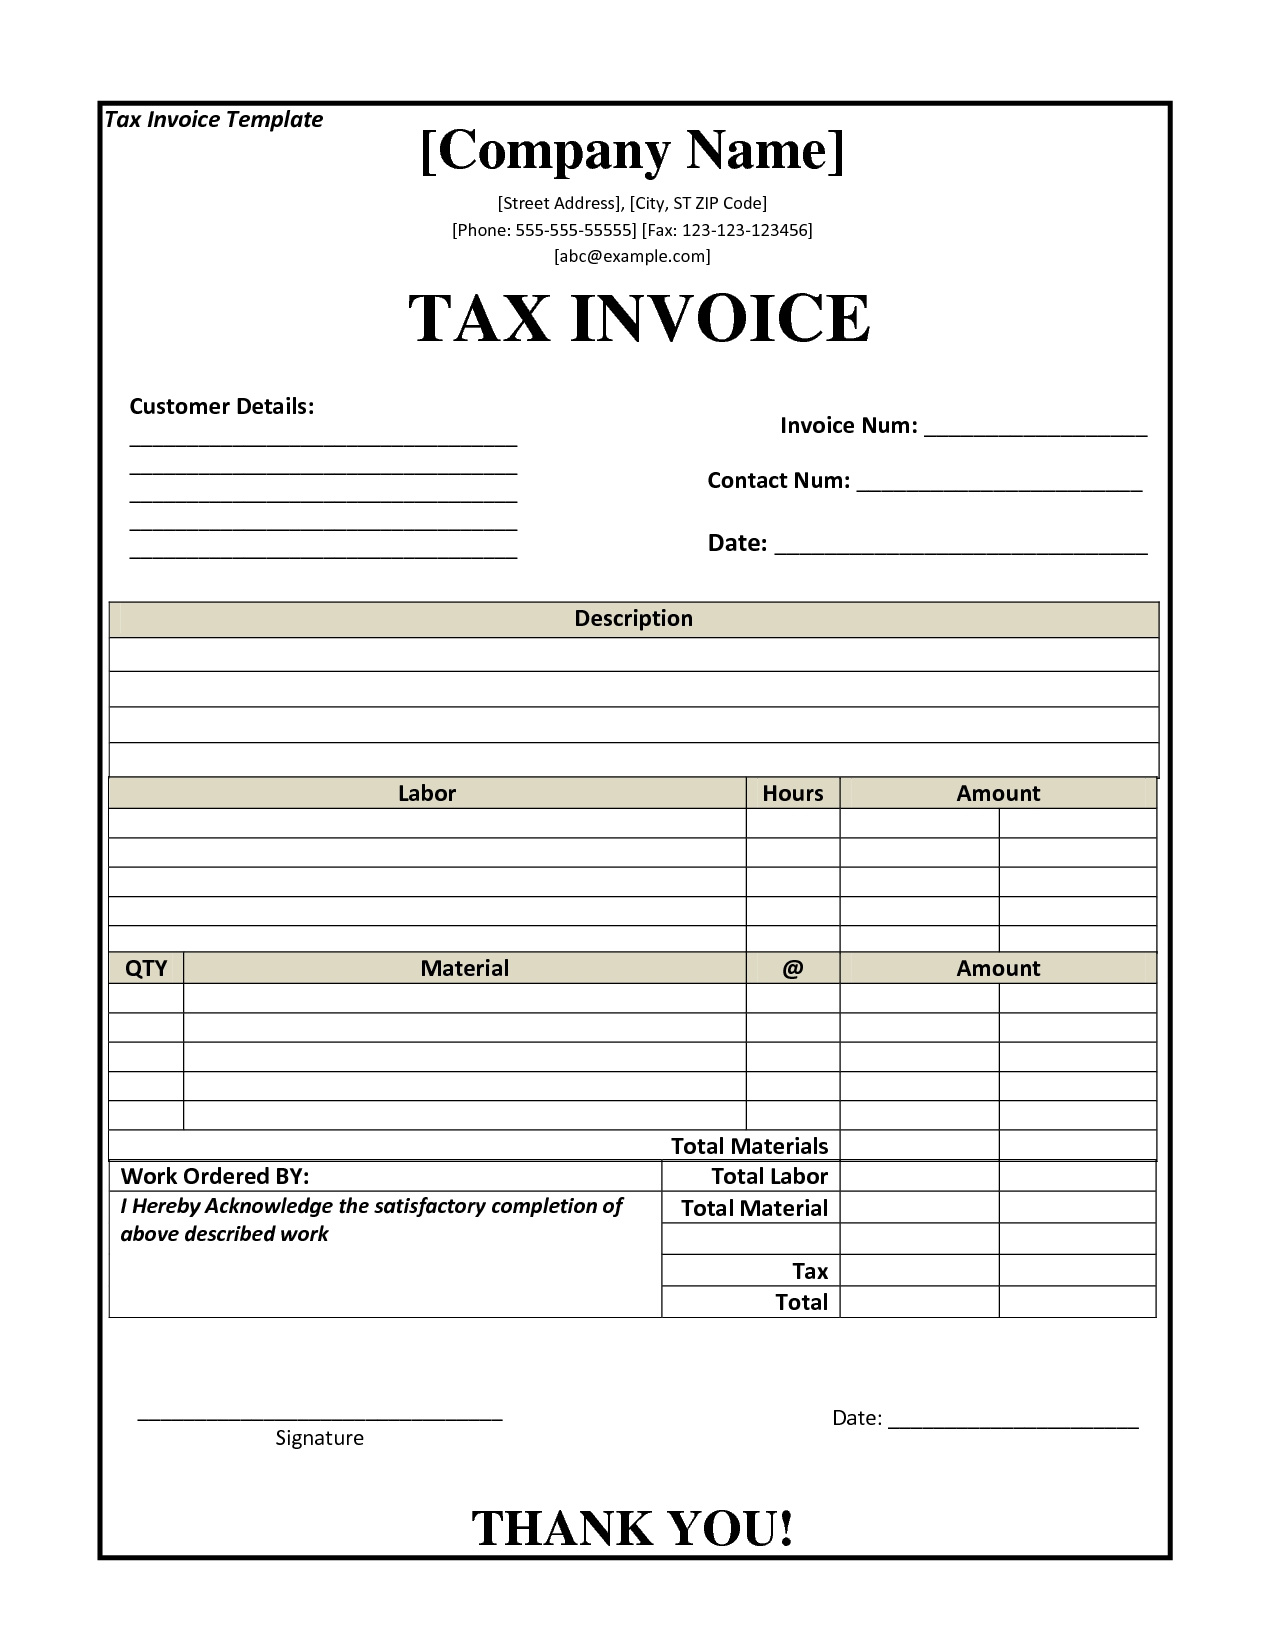 australian tax invoice template free all about template requirements of tax invoice